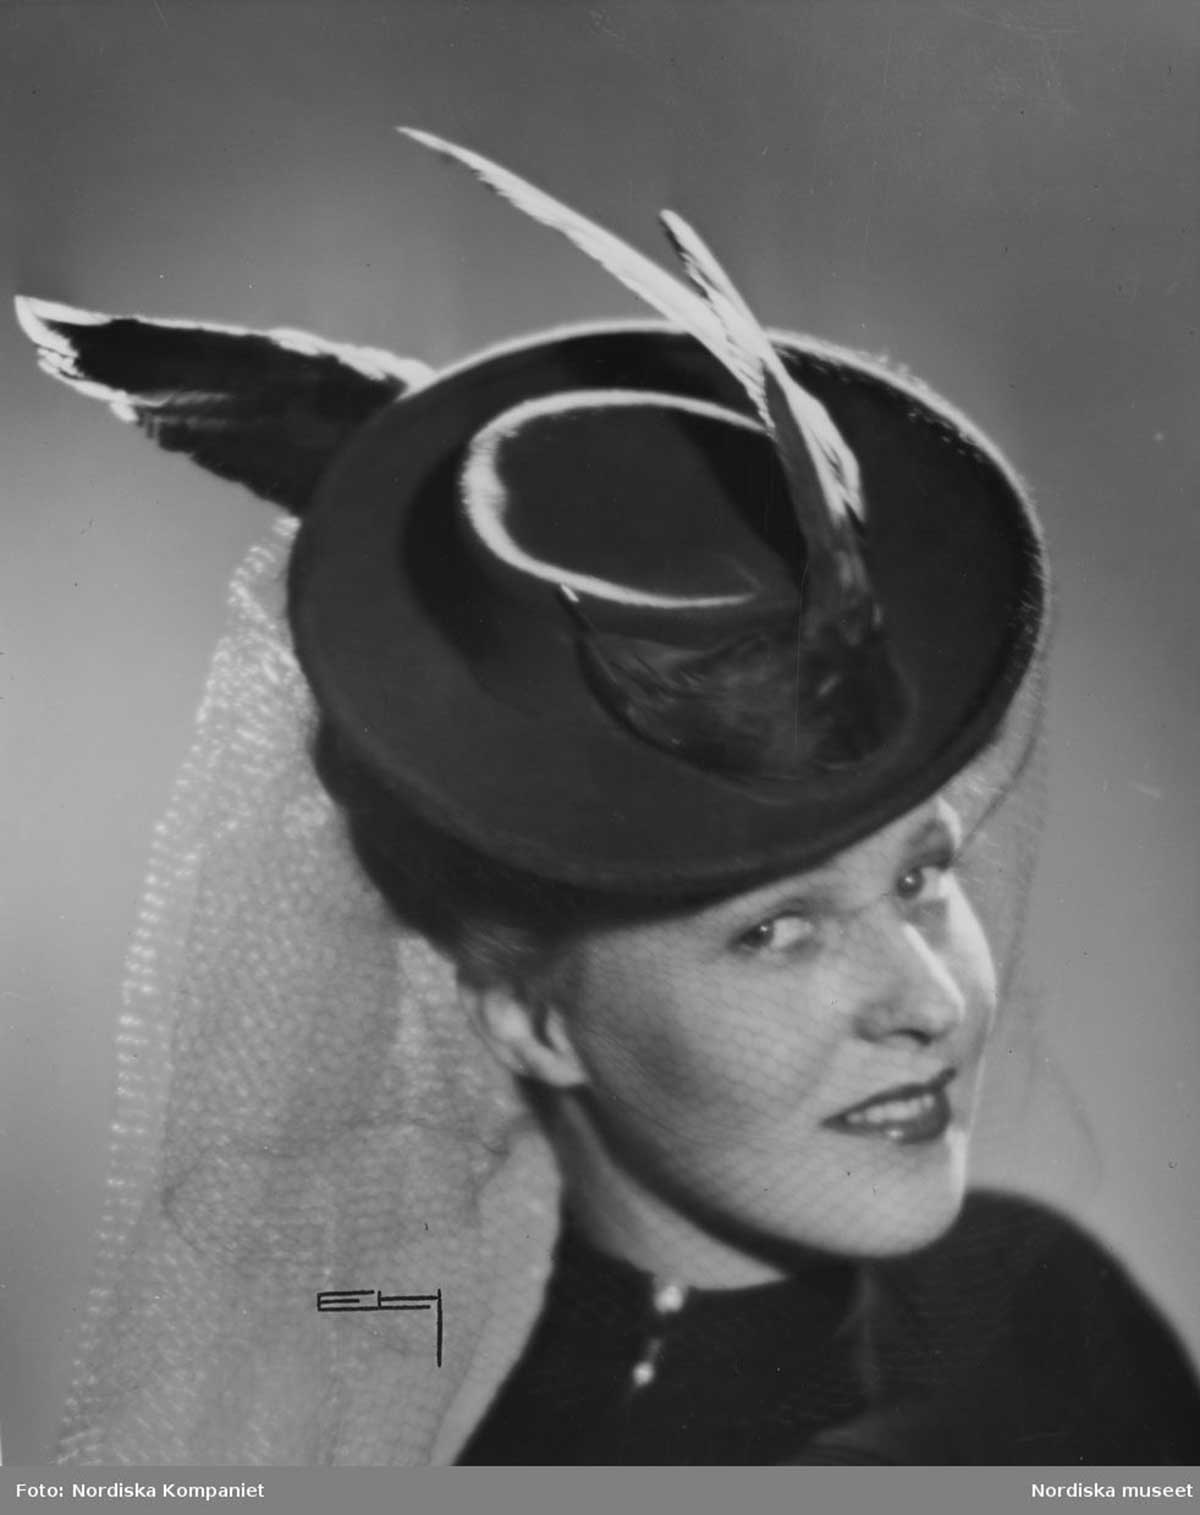 1940s Hat Styles From 1940 To 1945 Glamourdaze